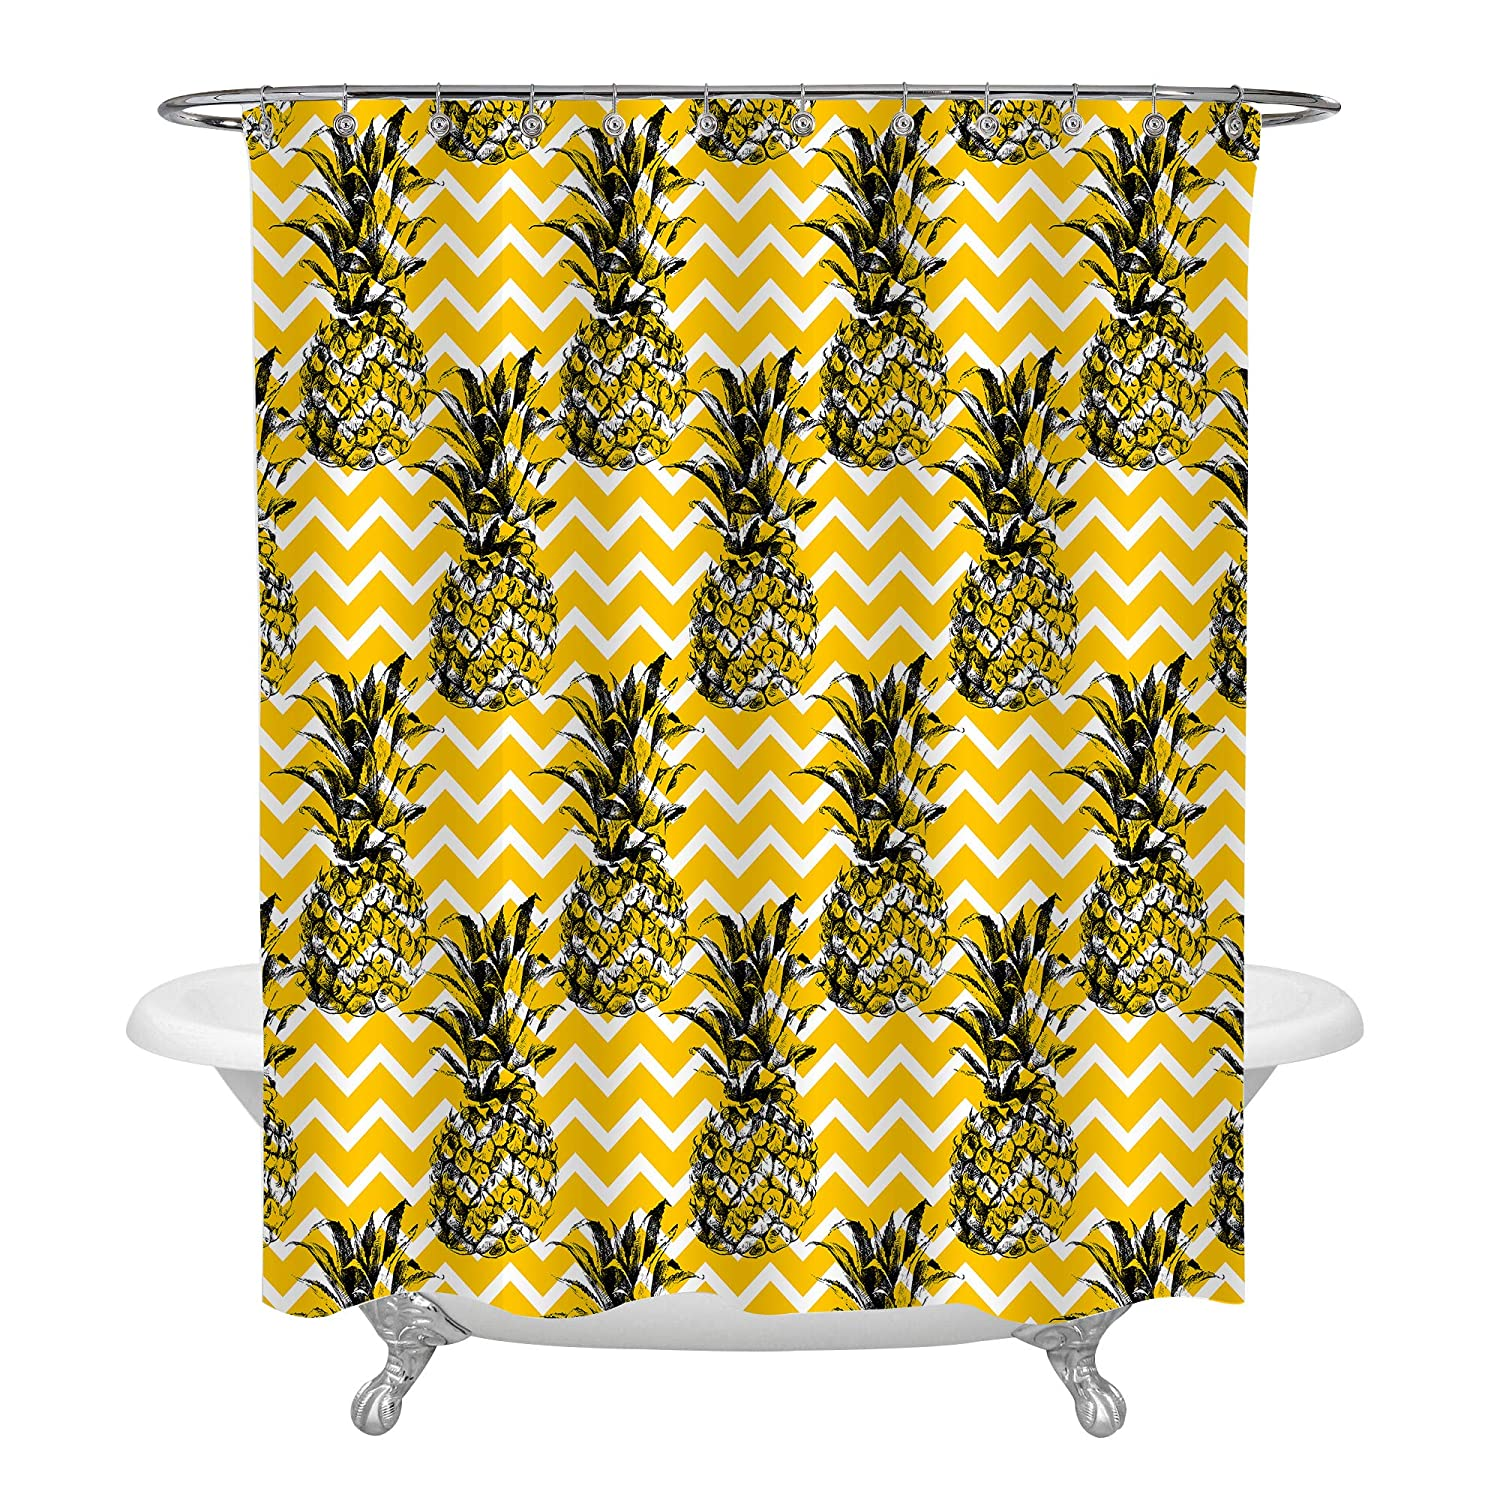 72 X 78 Inch Gold Black White Zig Zag Pattern Stylish Bath Decorations Summer Bathroom Decor Sets with Hooks for Teens in Antique Print MitoVilla Sketch Pineapple Shower Curtain